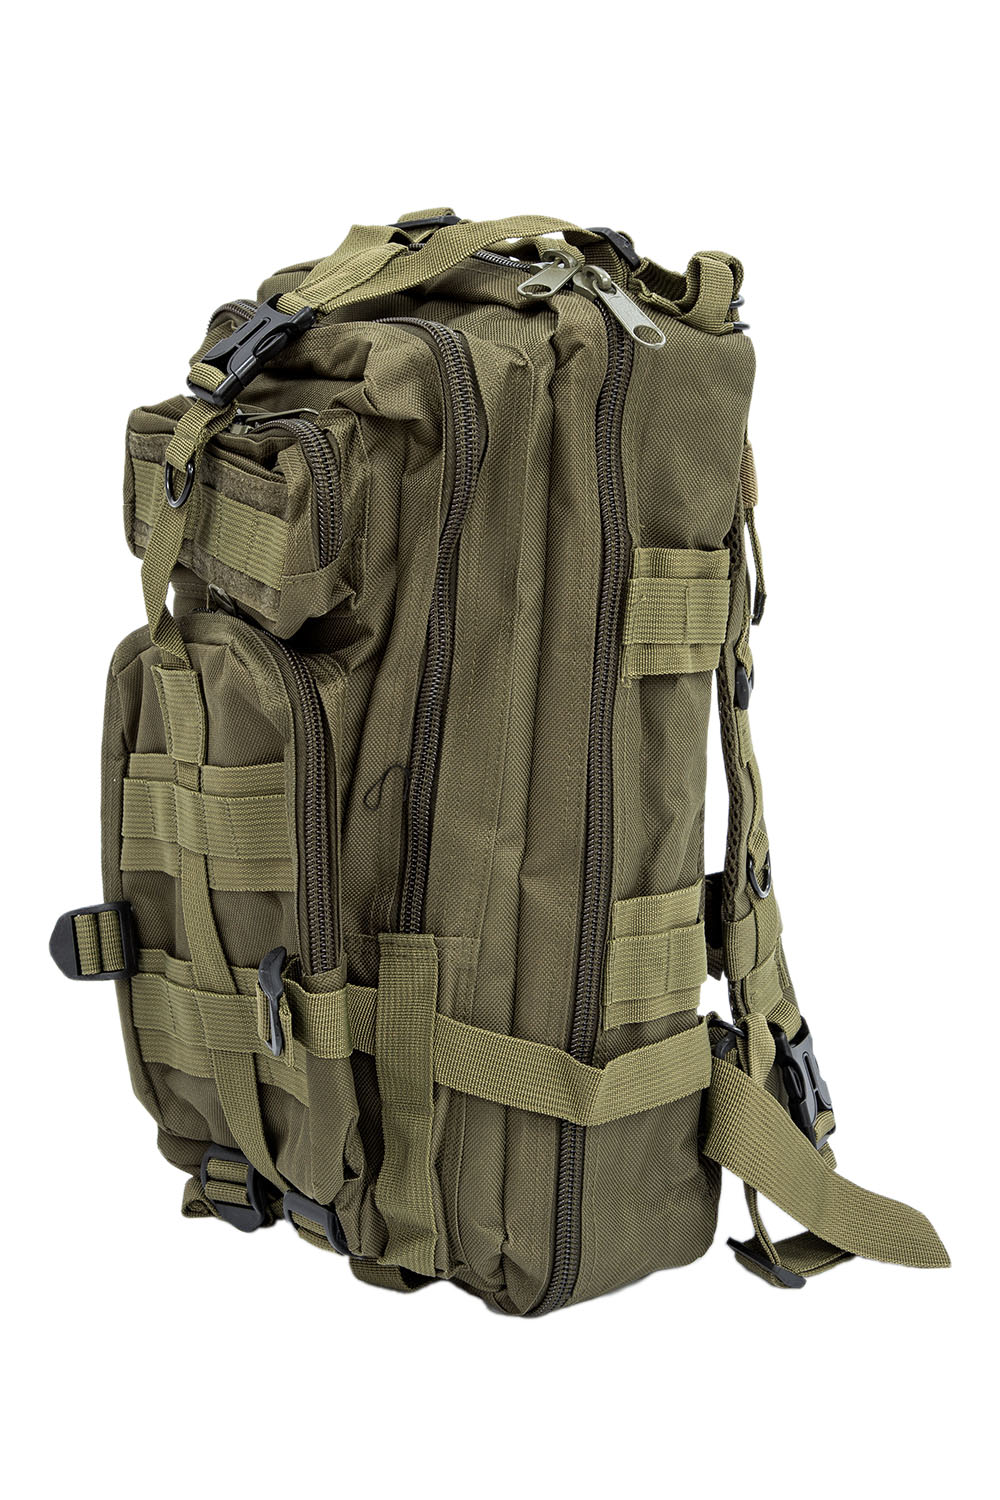 Men Outdoor Backpack - Men Outdoor Backpack Military Tactical Backpack Camping Hiking Hunting Trekking Backpack (army Green)